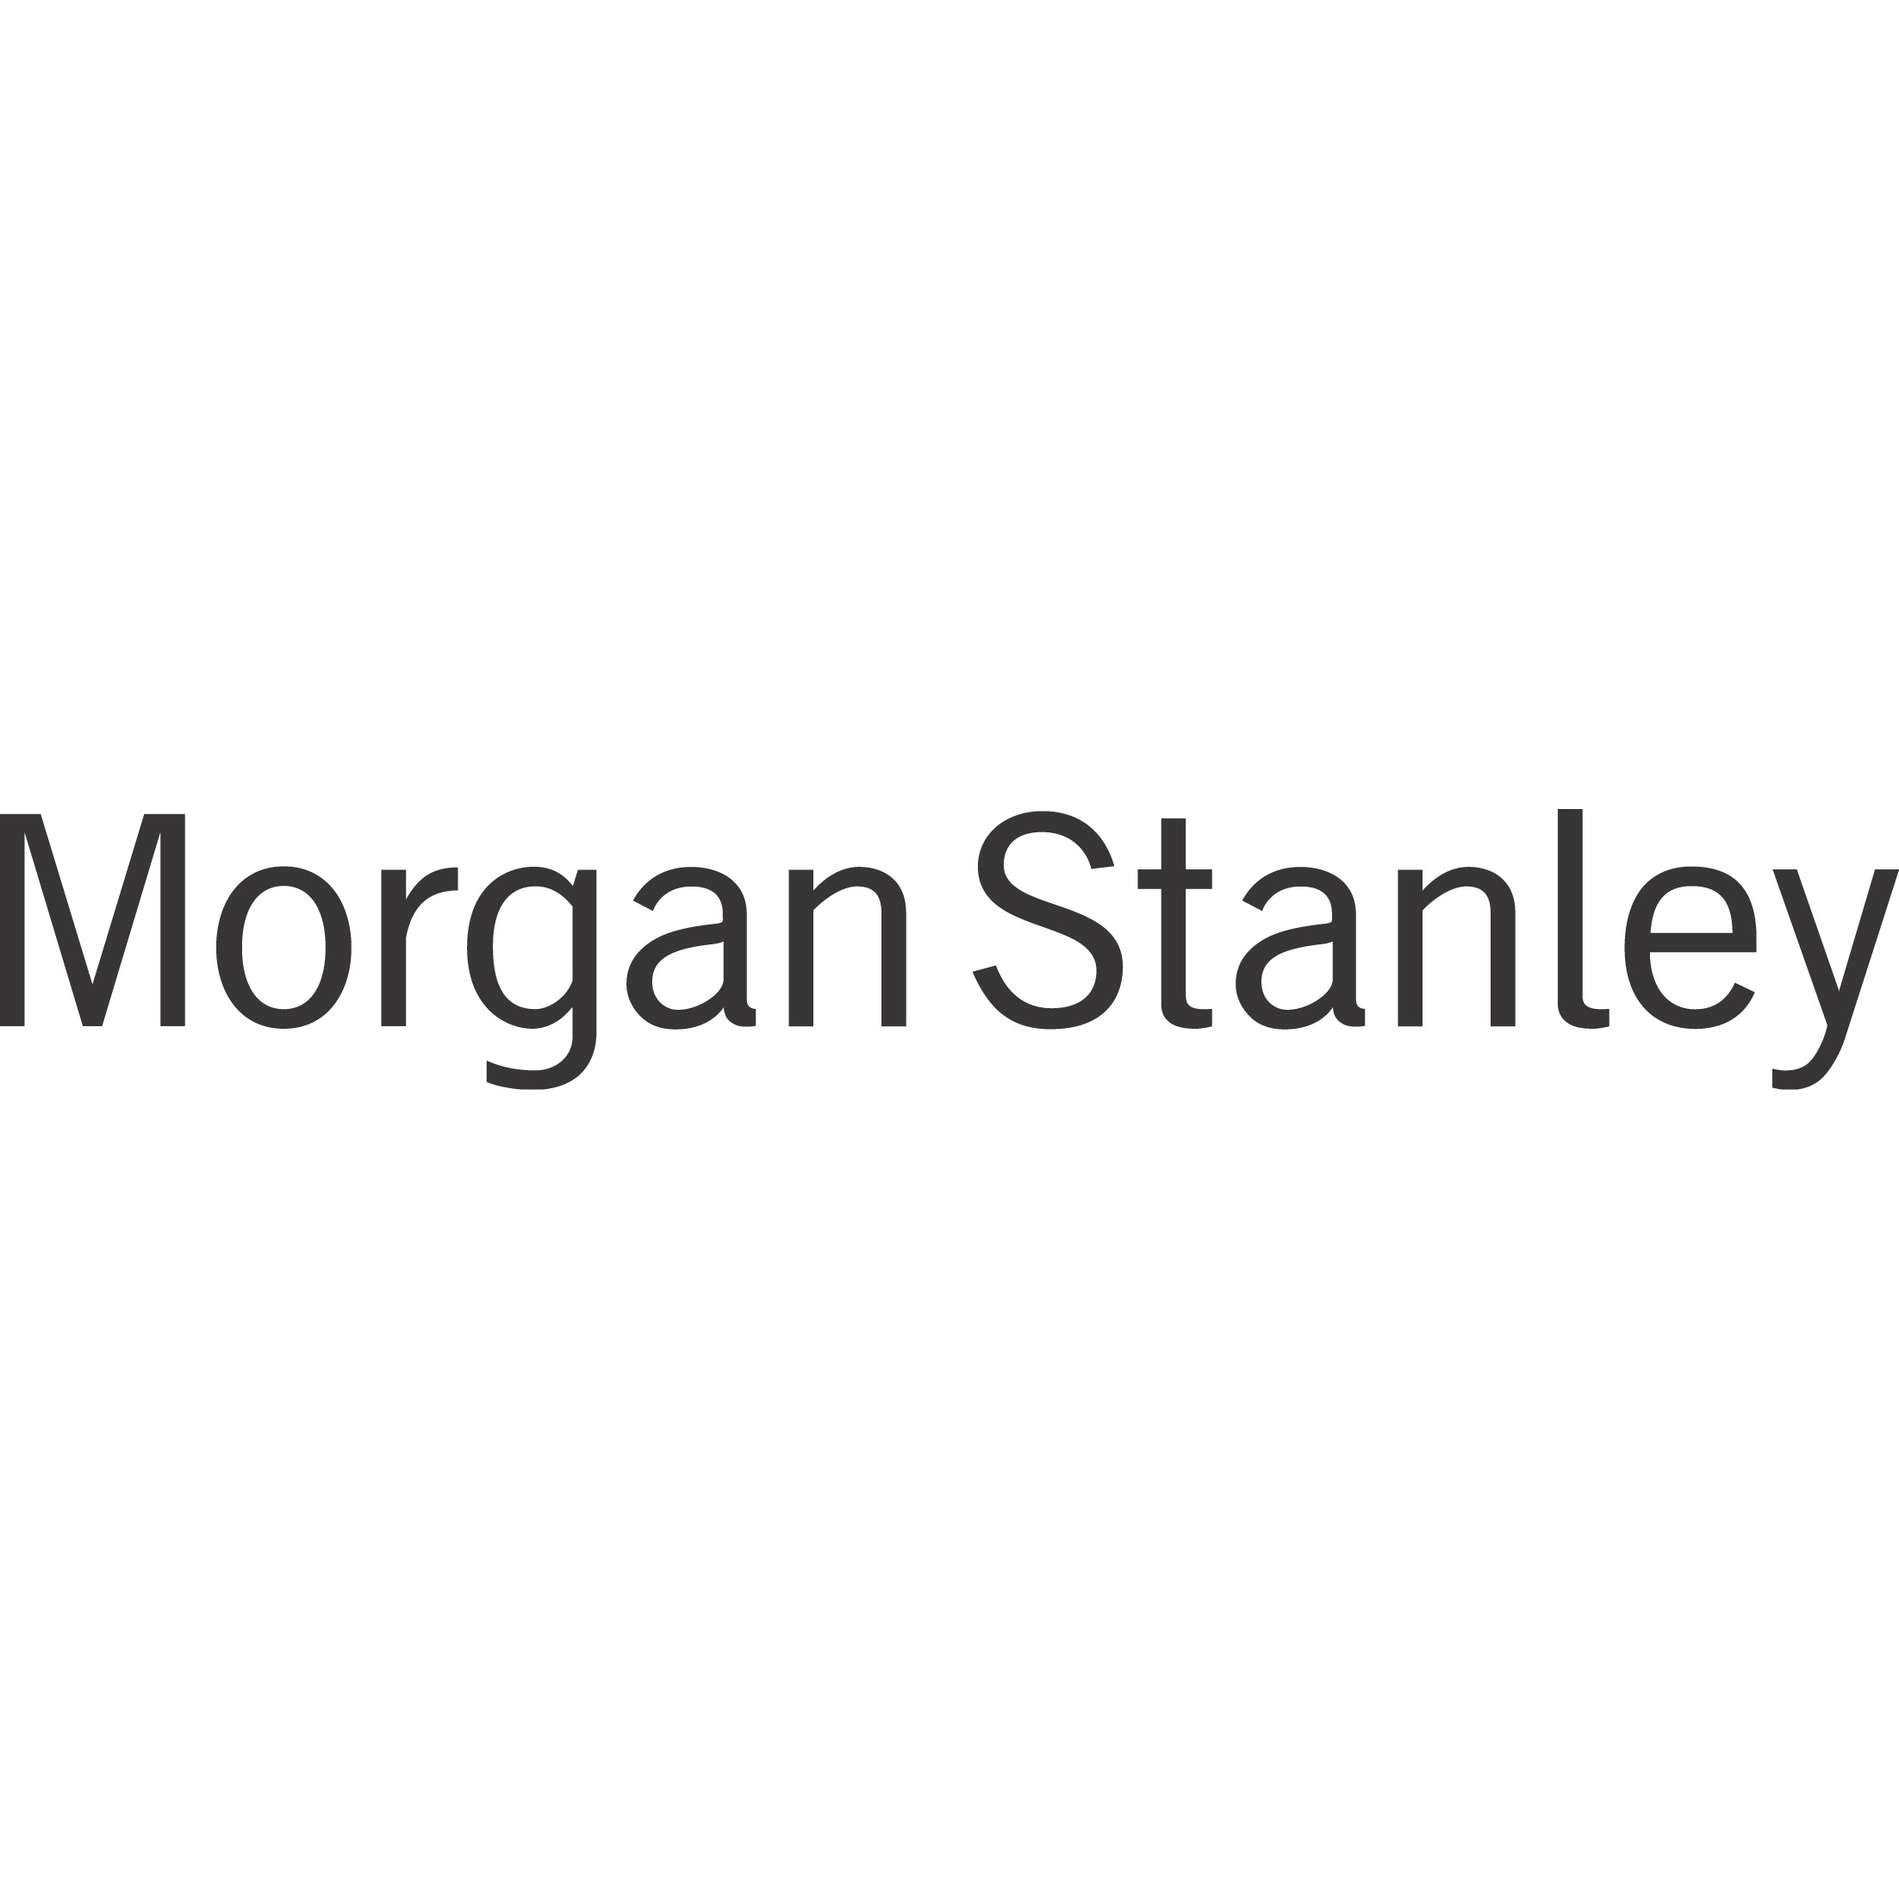 Joyce M Burich-Andrews - Morgan Stanley